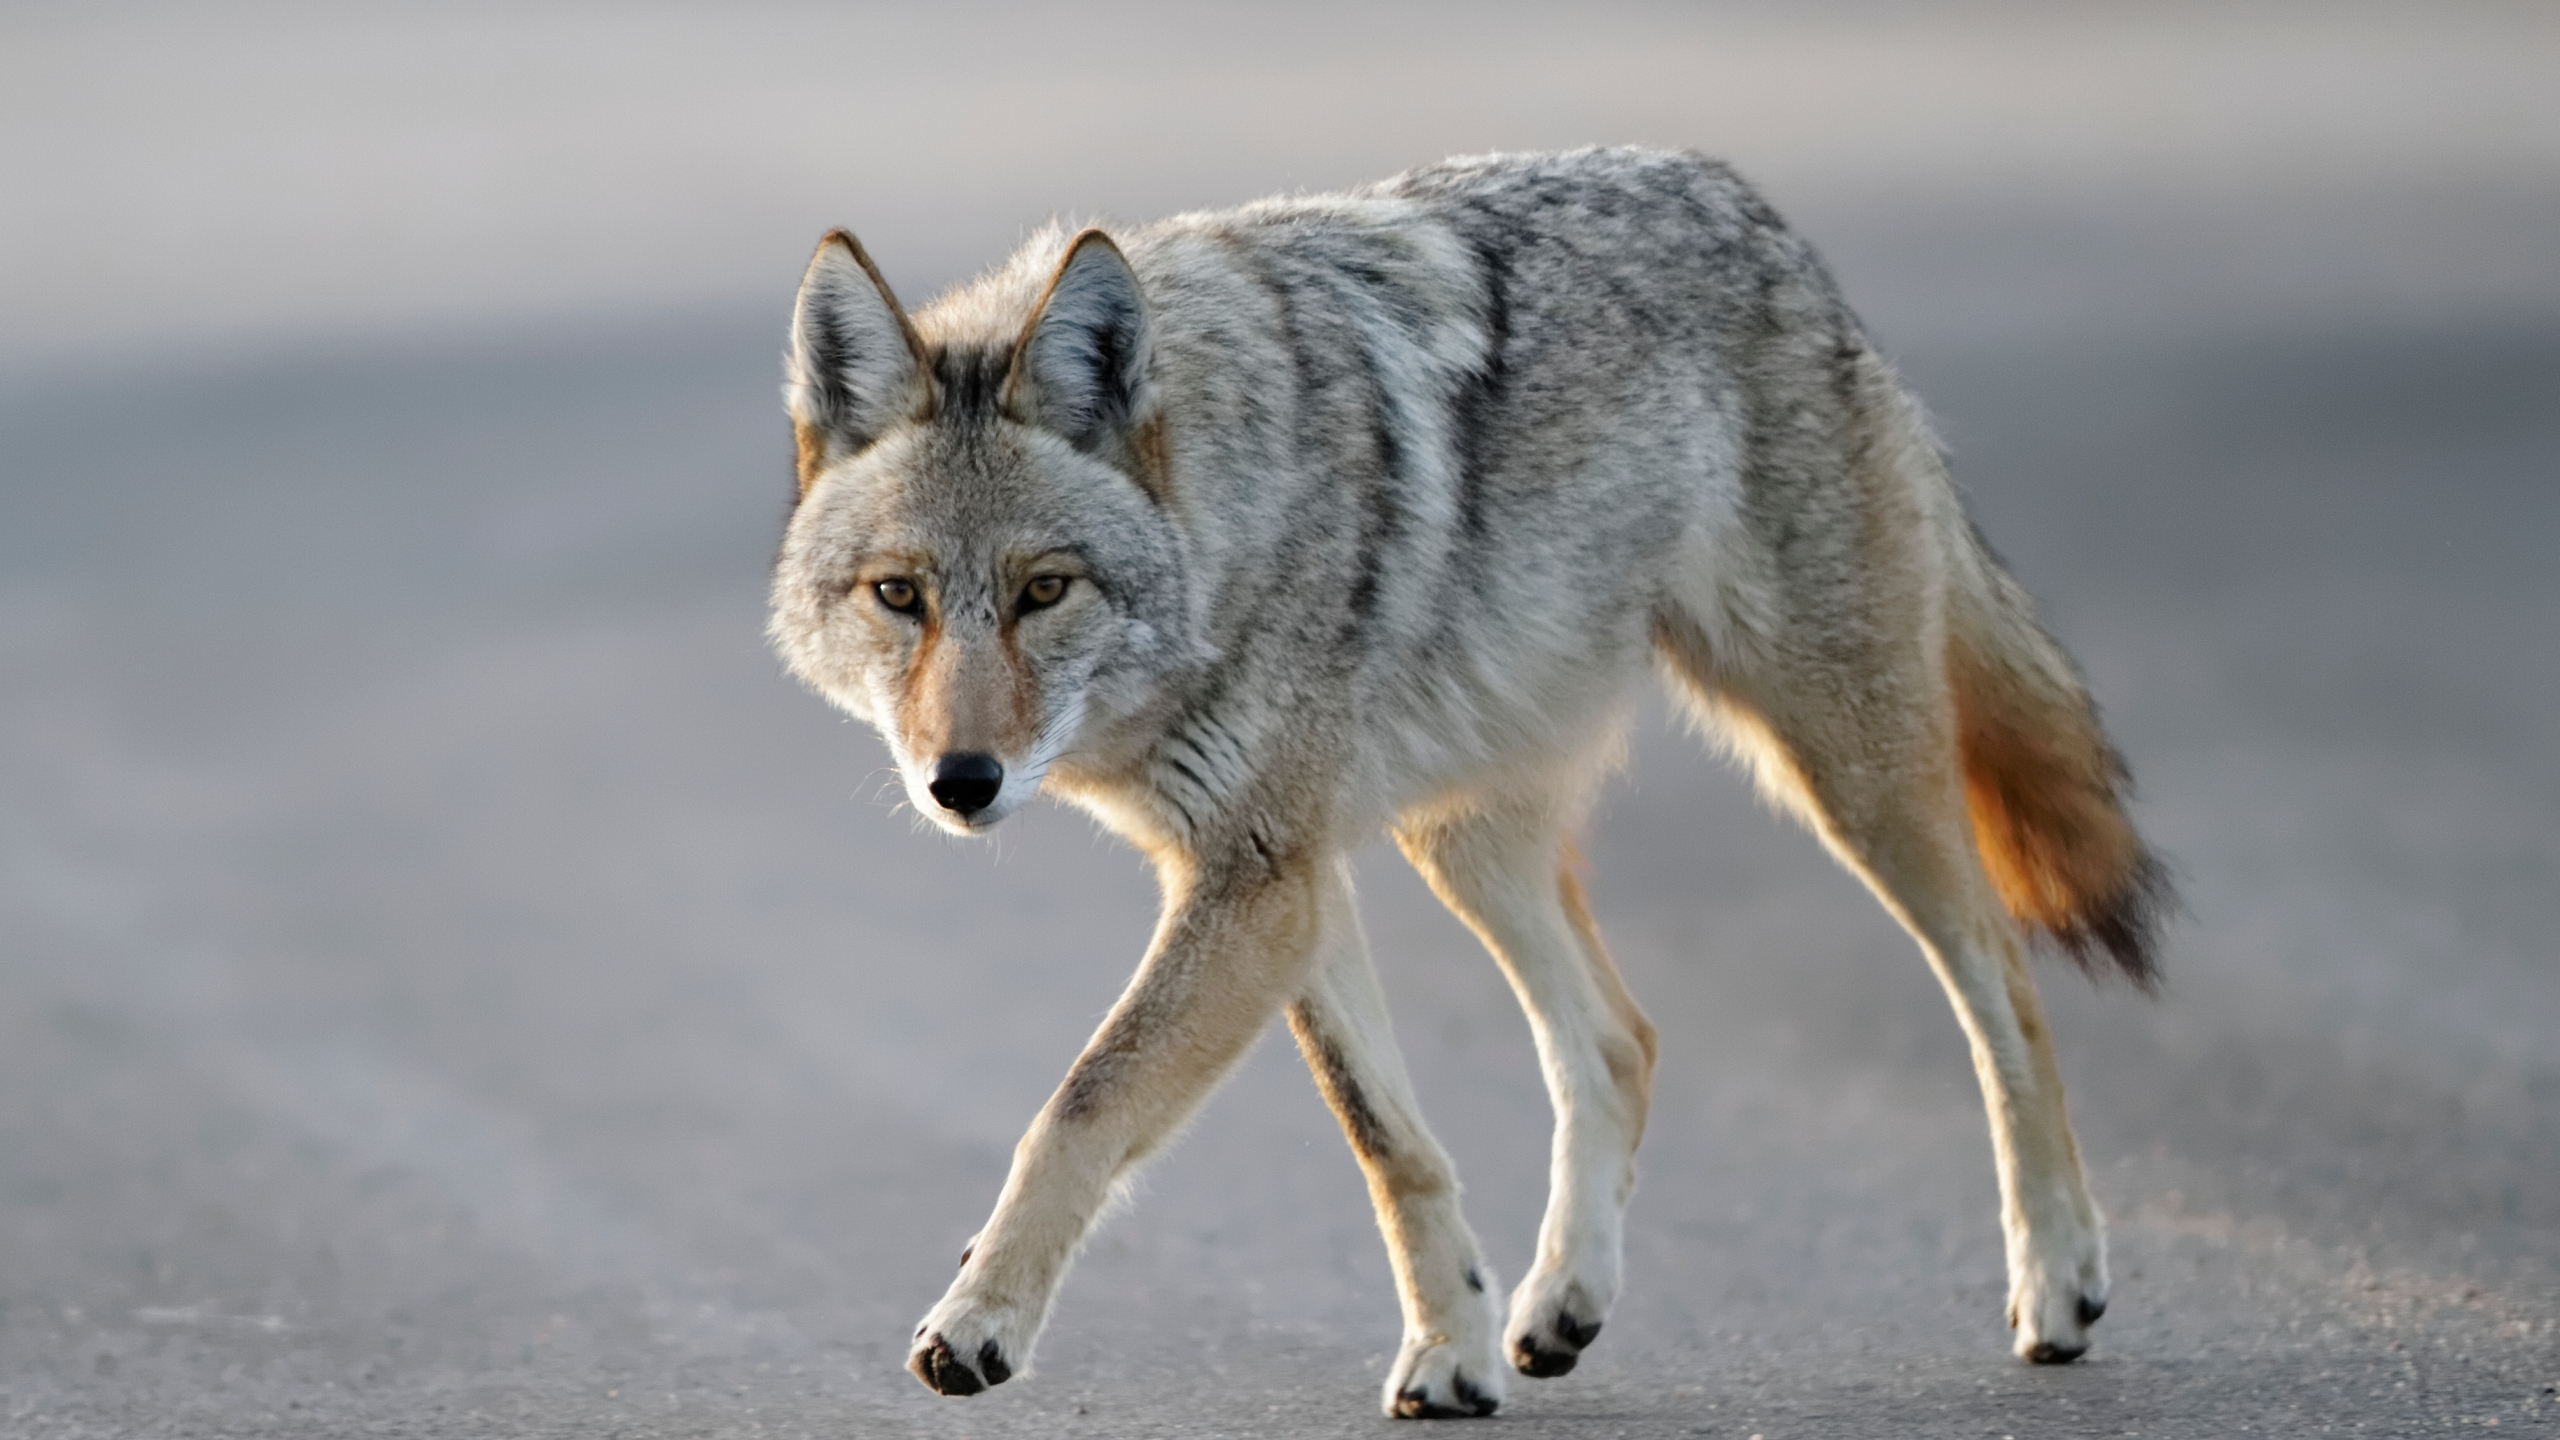 This file photo shows a coyote walking near Cherry Creek State park, Aurora, Colo. (Getty Images)